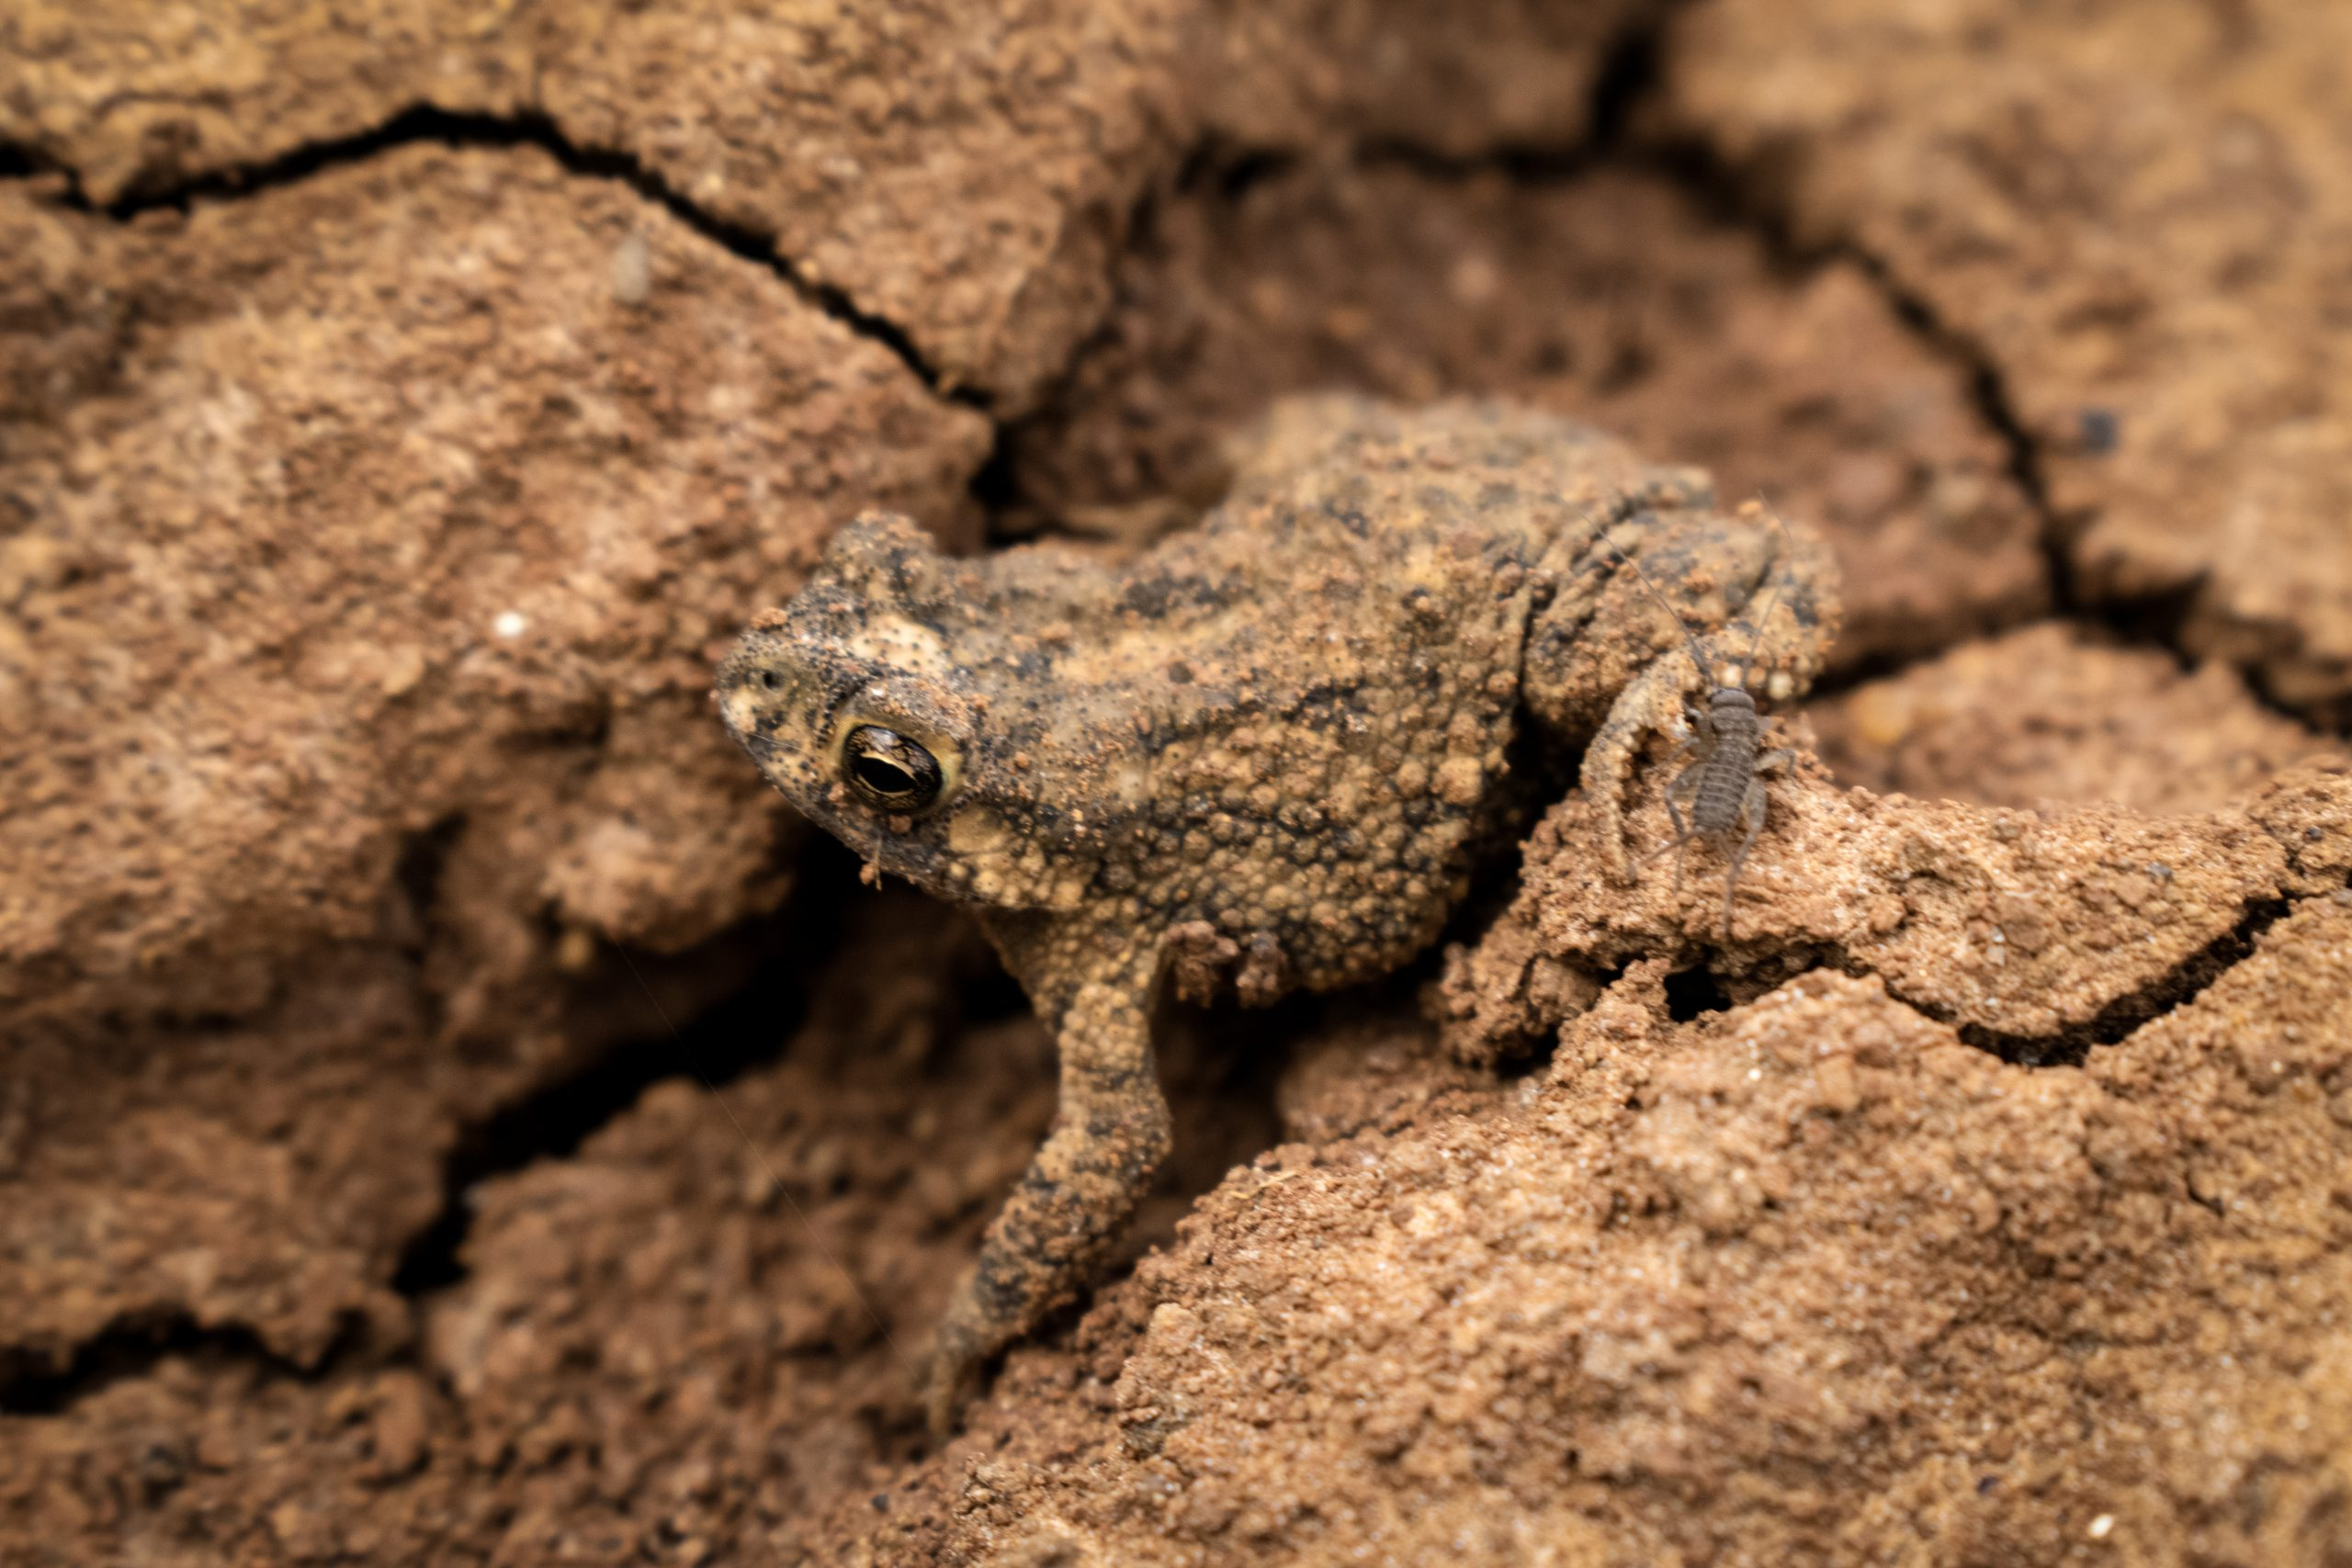 Toad in Dry Mud on Focus